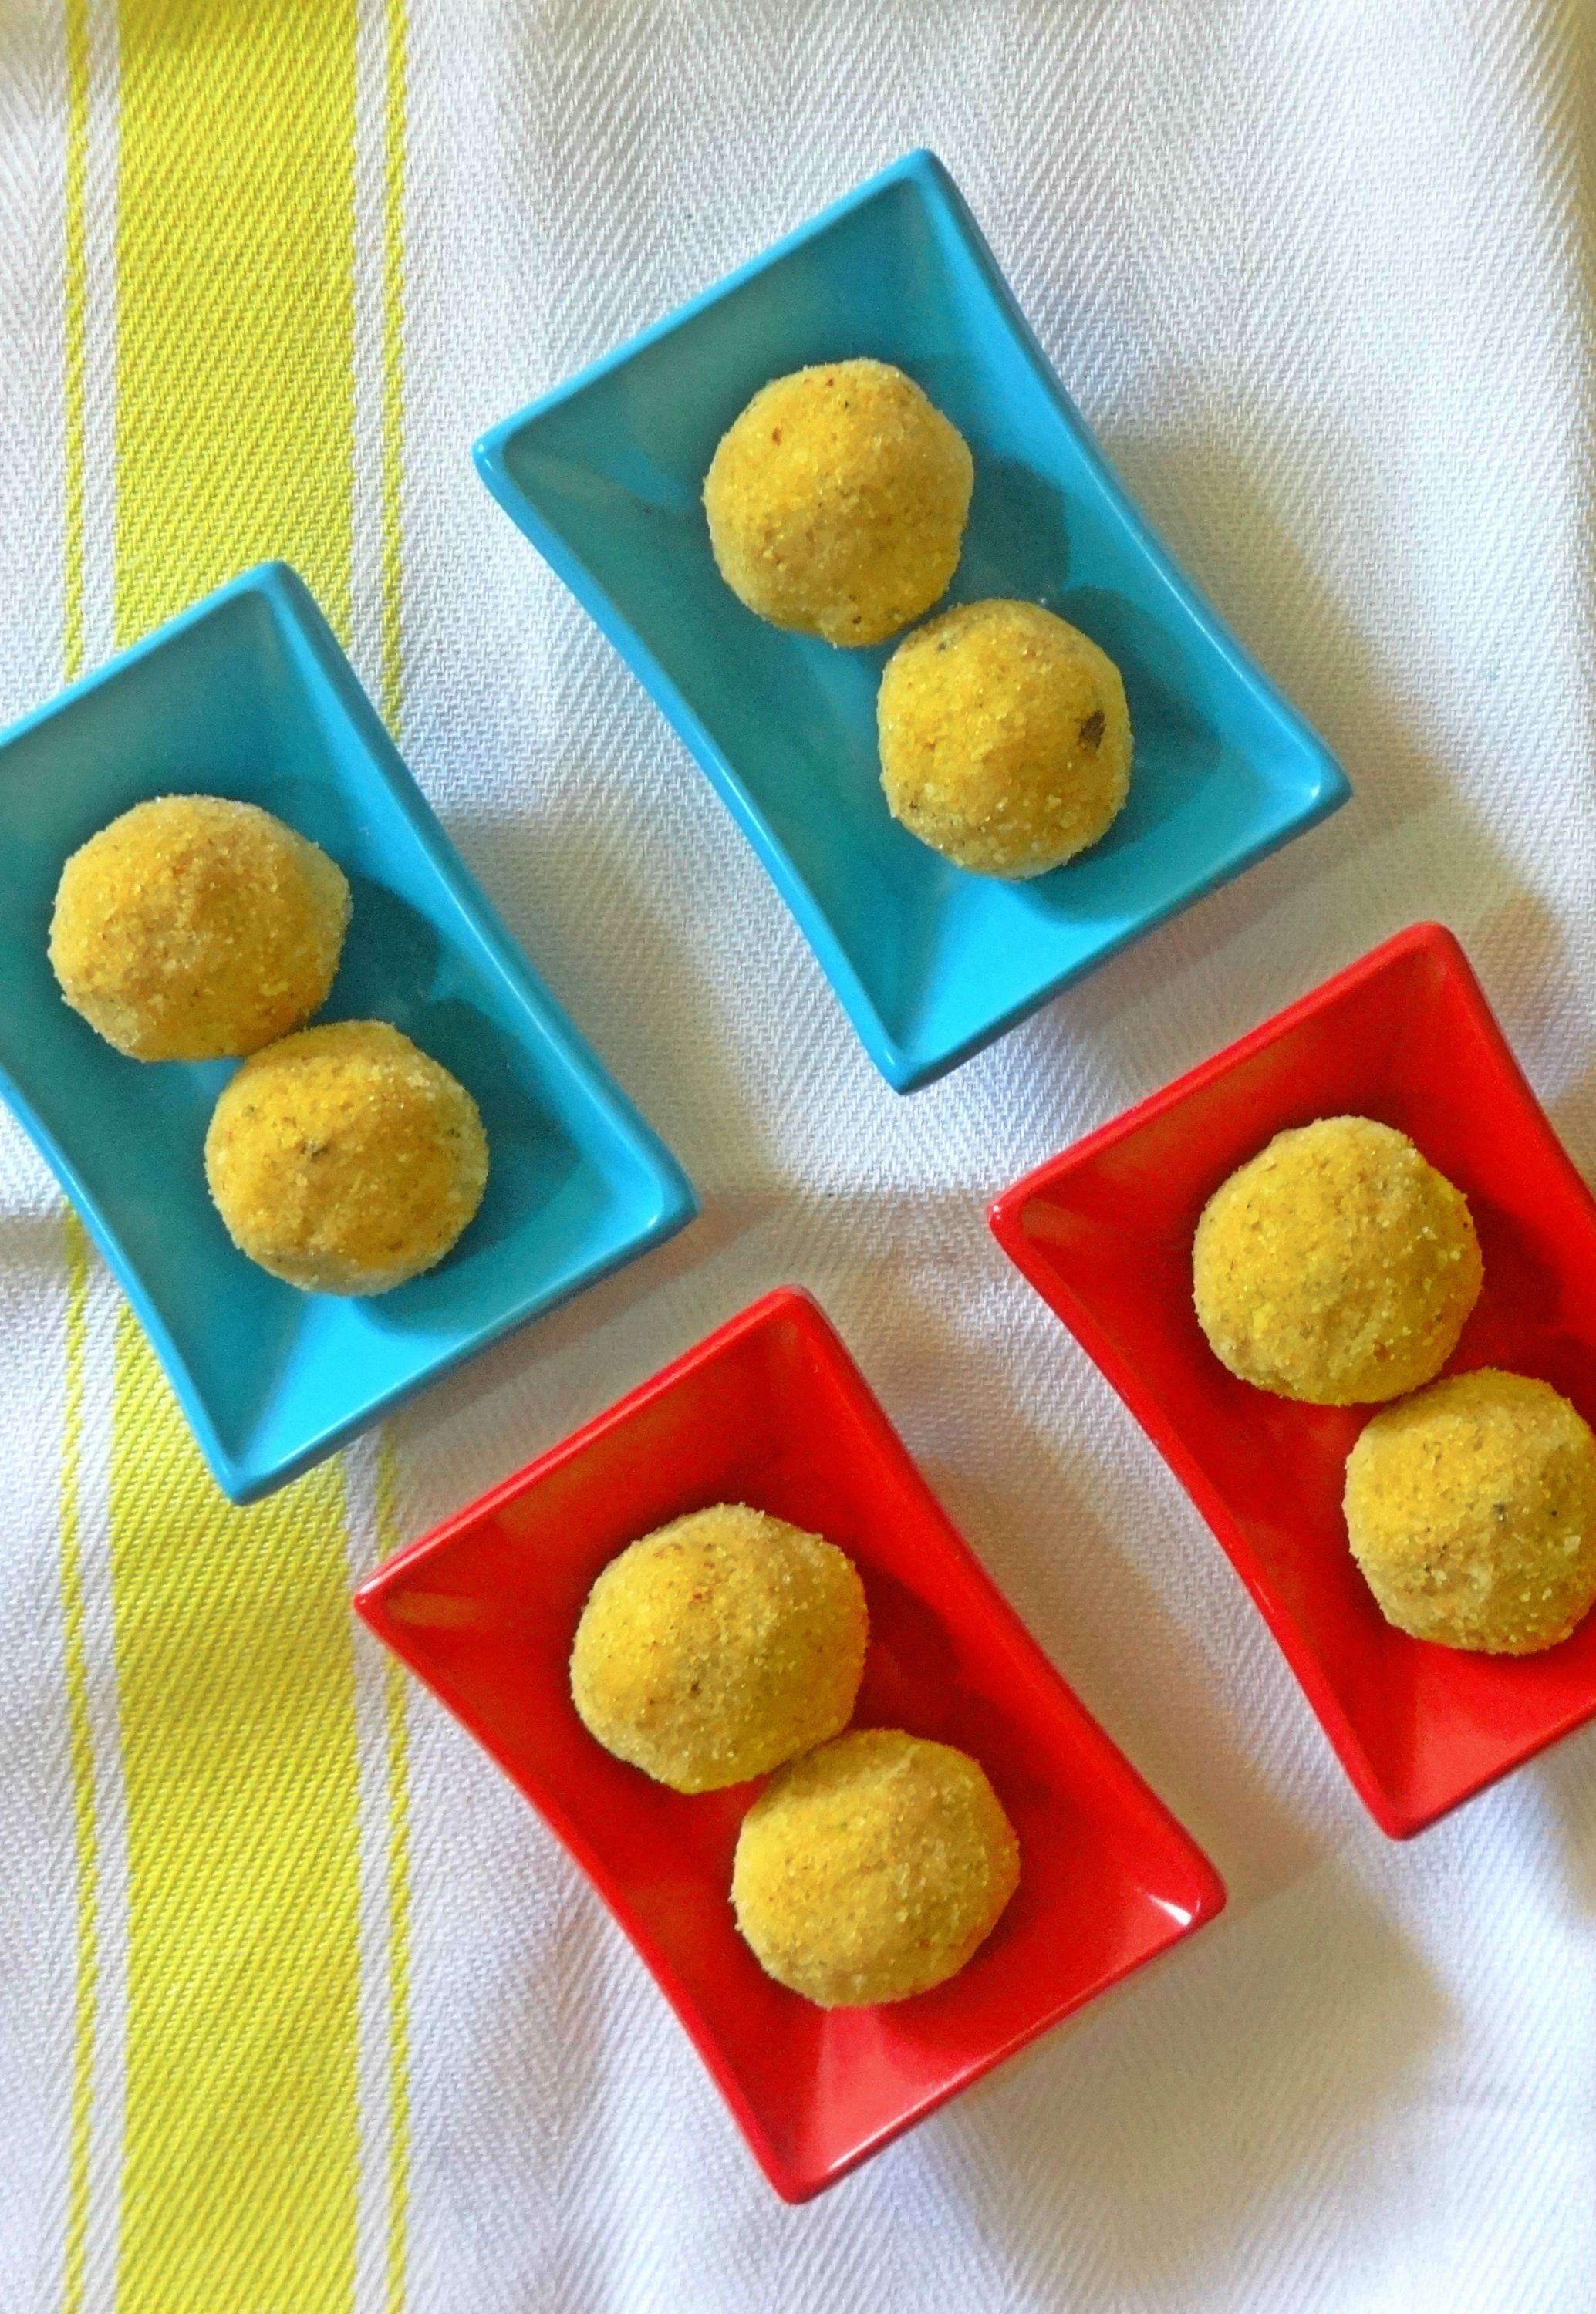 Moong Dal (Split Green gram) Ladoo Recipe | lunch box | Pinterest ...